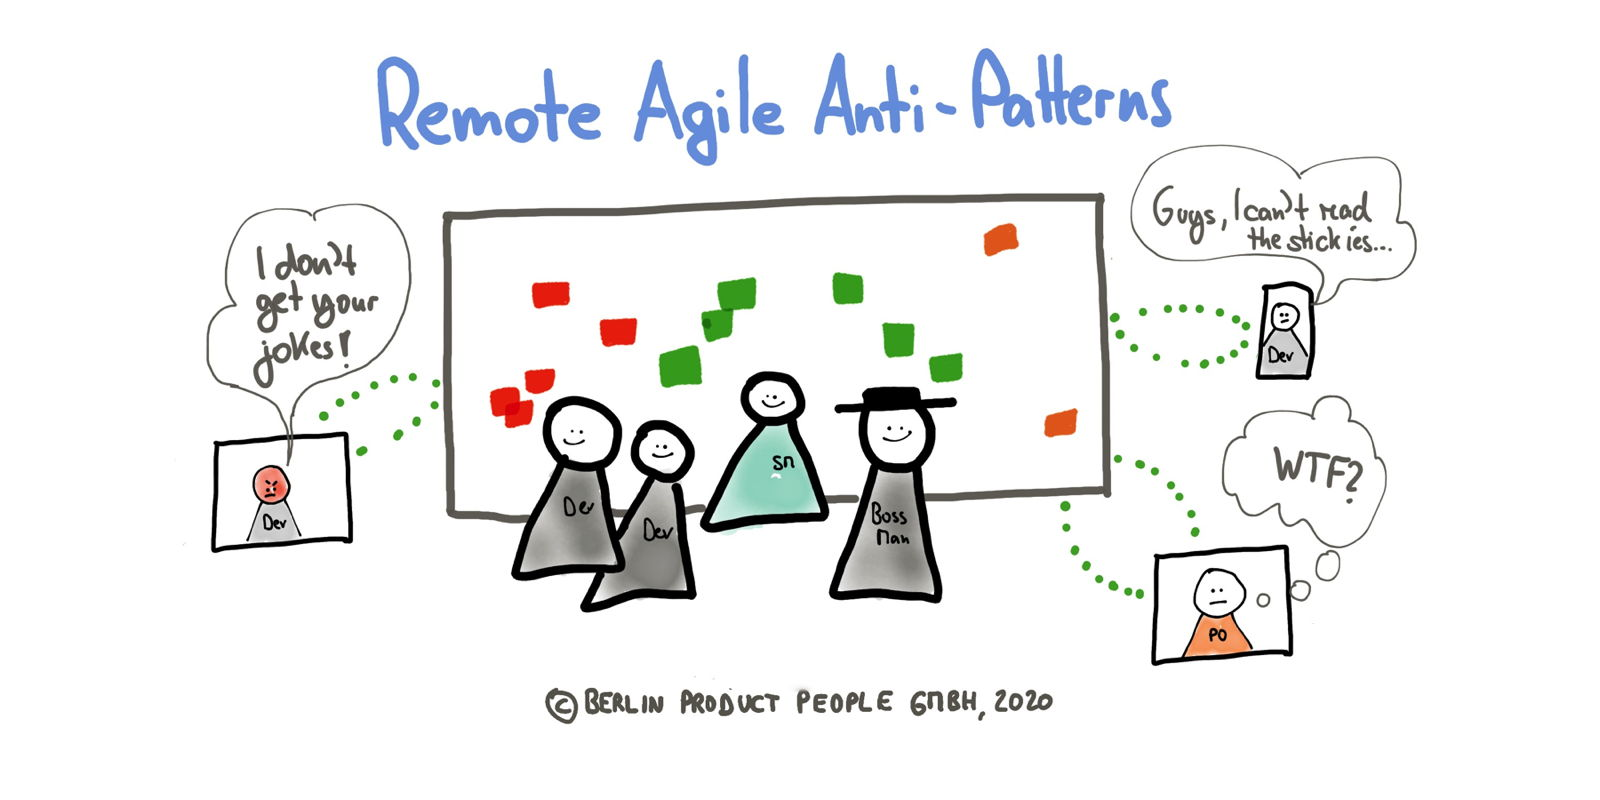 Remote Agile (Part 4): Anti-Patterns — Pitfalls Successful Distributed Teams Avoid